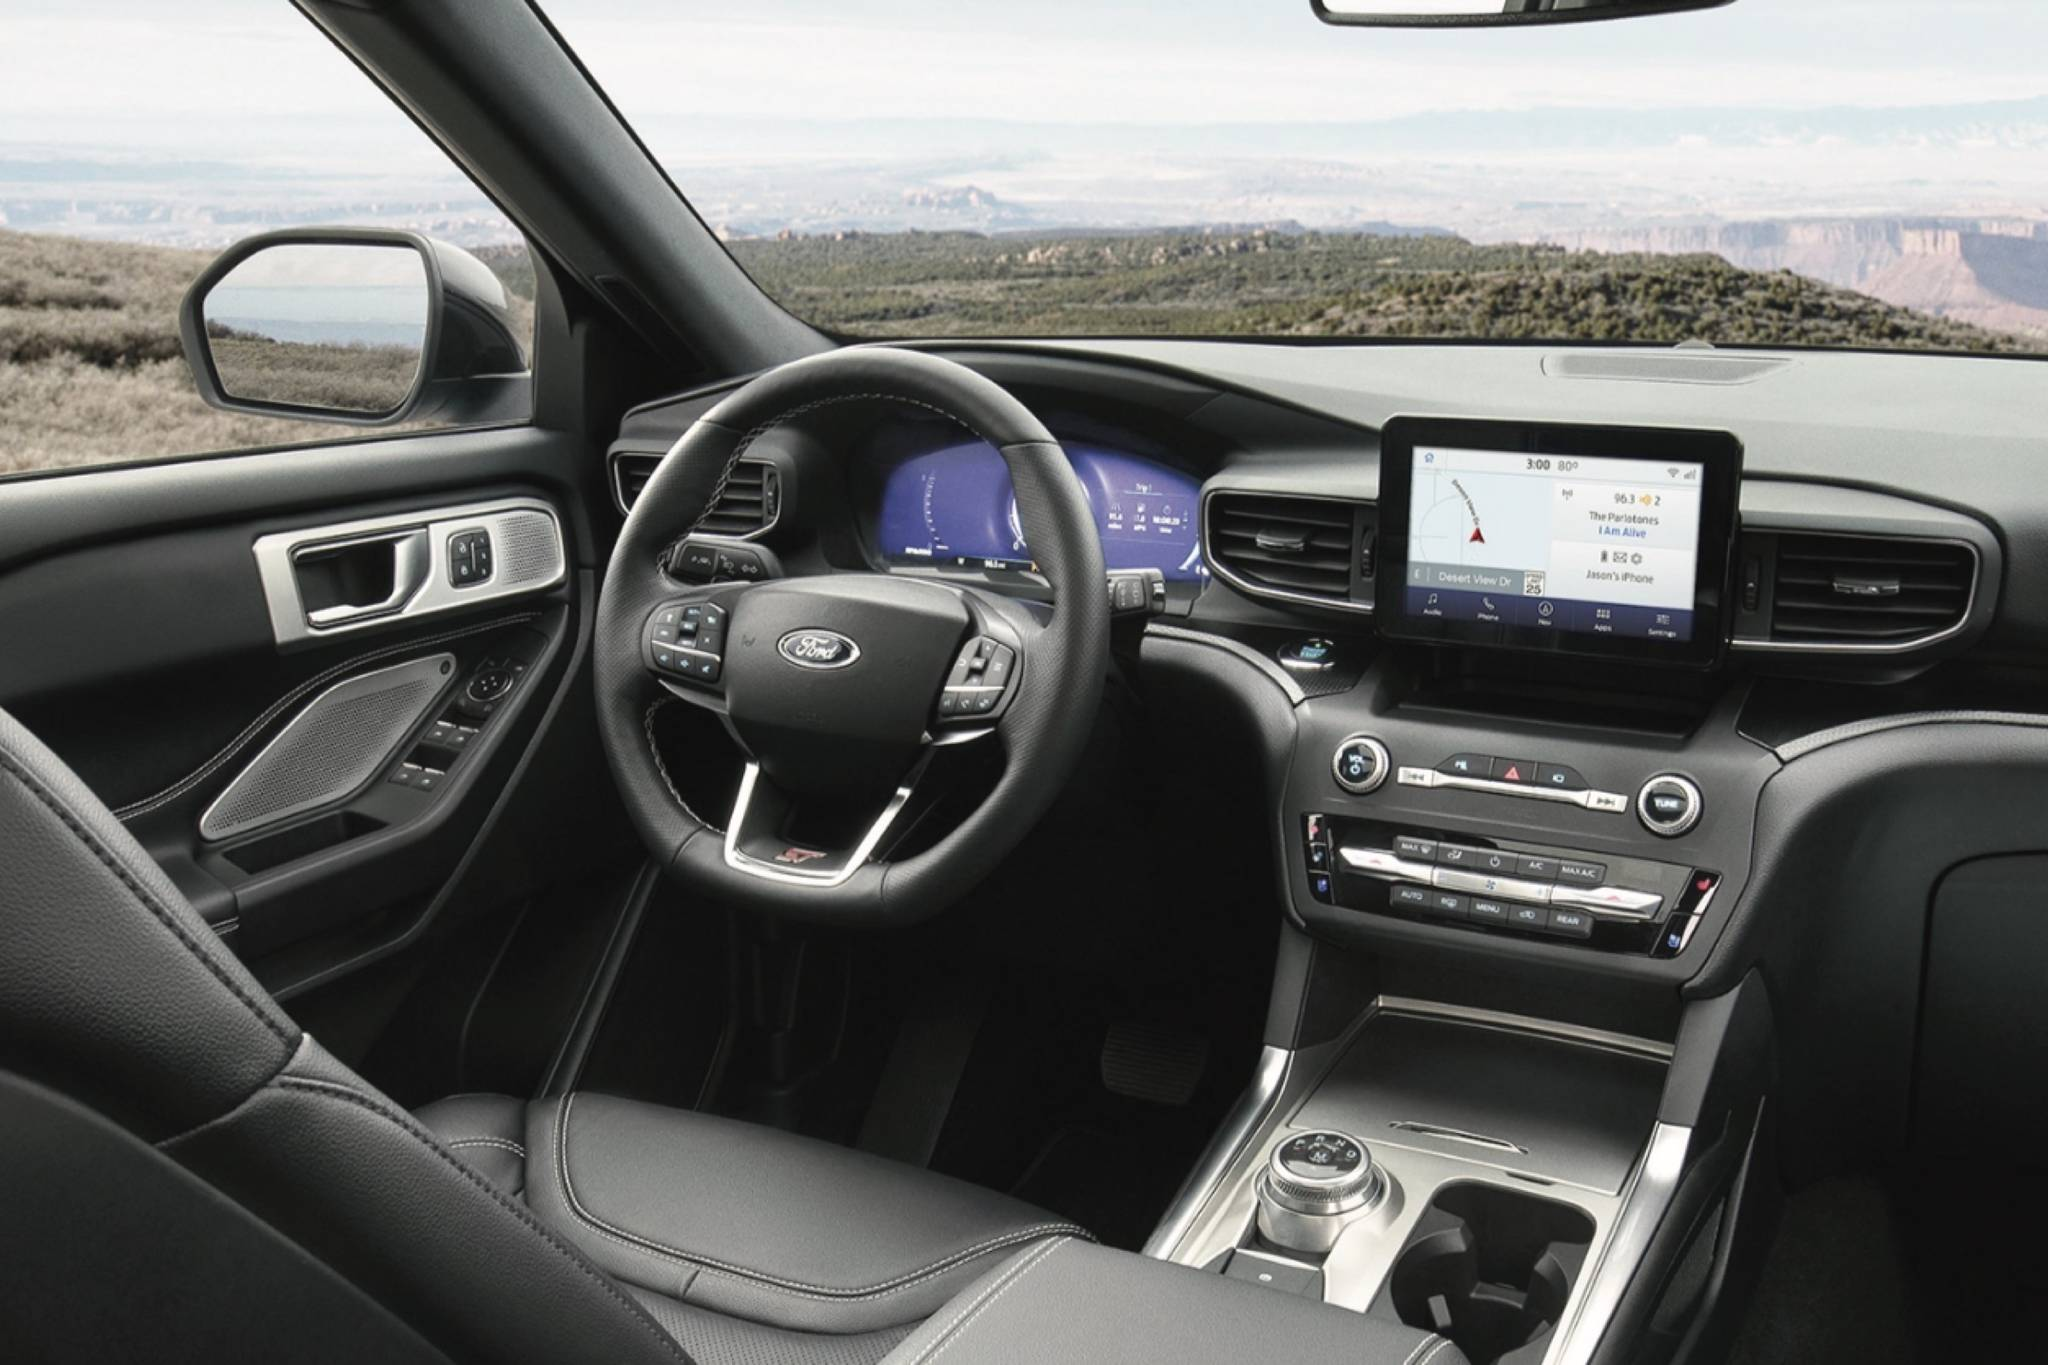 The interior layout has a new gear-selector dial that replaces the traditional shift lever, which frees up some room and declutters the look. Shown is the optional 12.3-inch instrument display that has a Mindful Mode, which leaves visible the fuel remaining and the speedometer. Photo: Ford